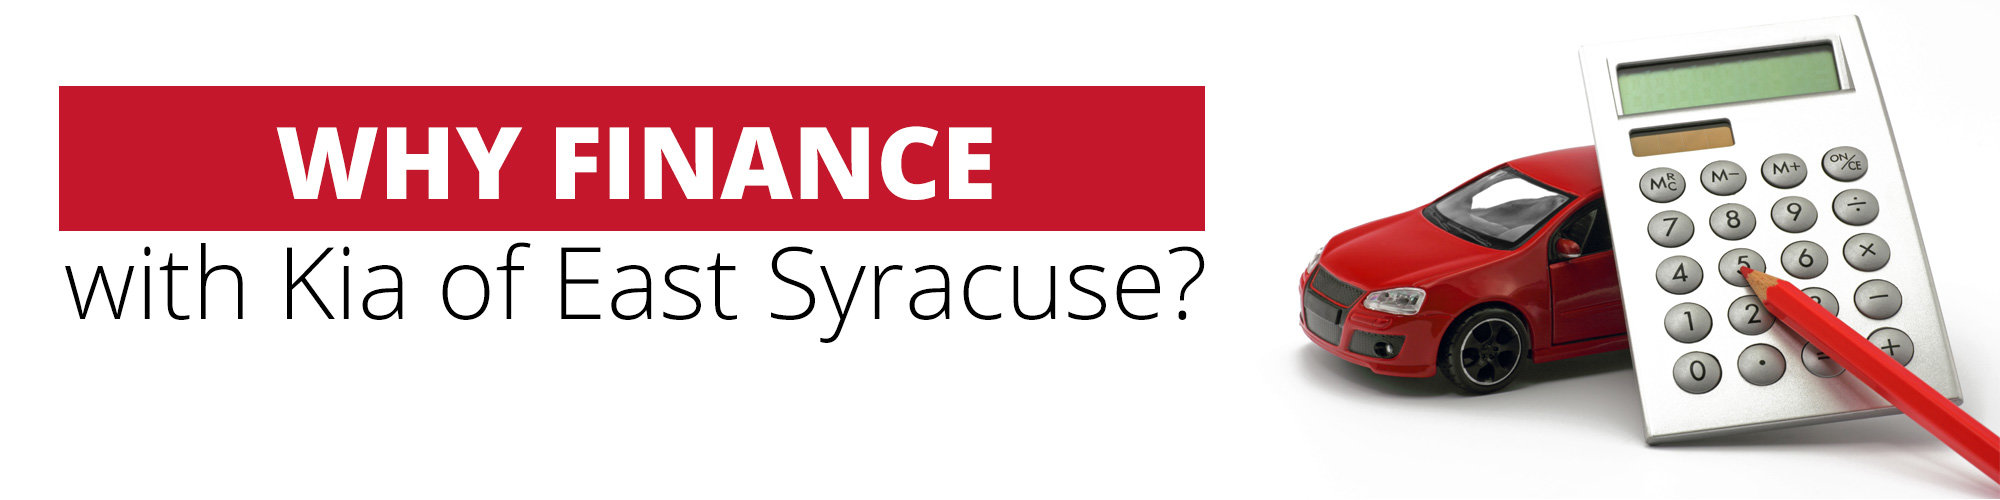 Why Finance With East Syracuse